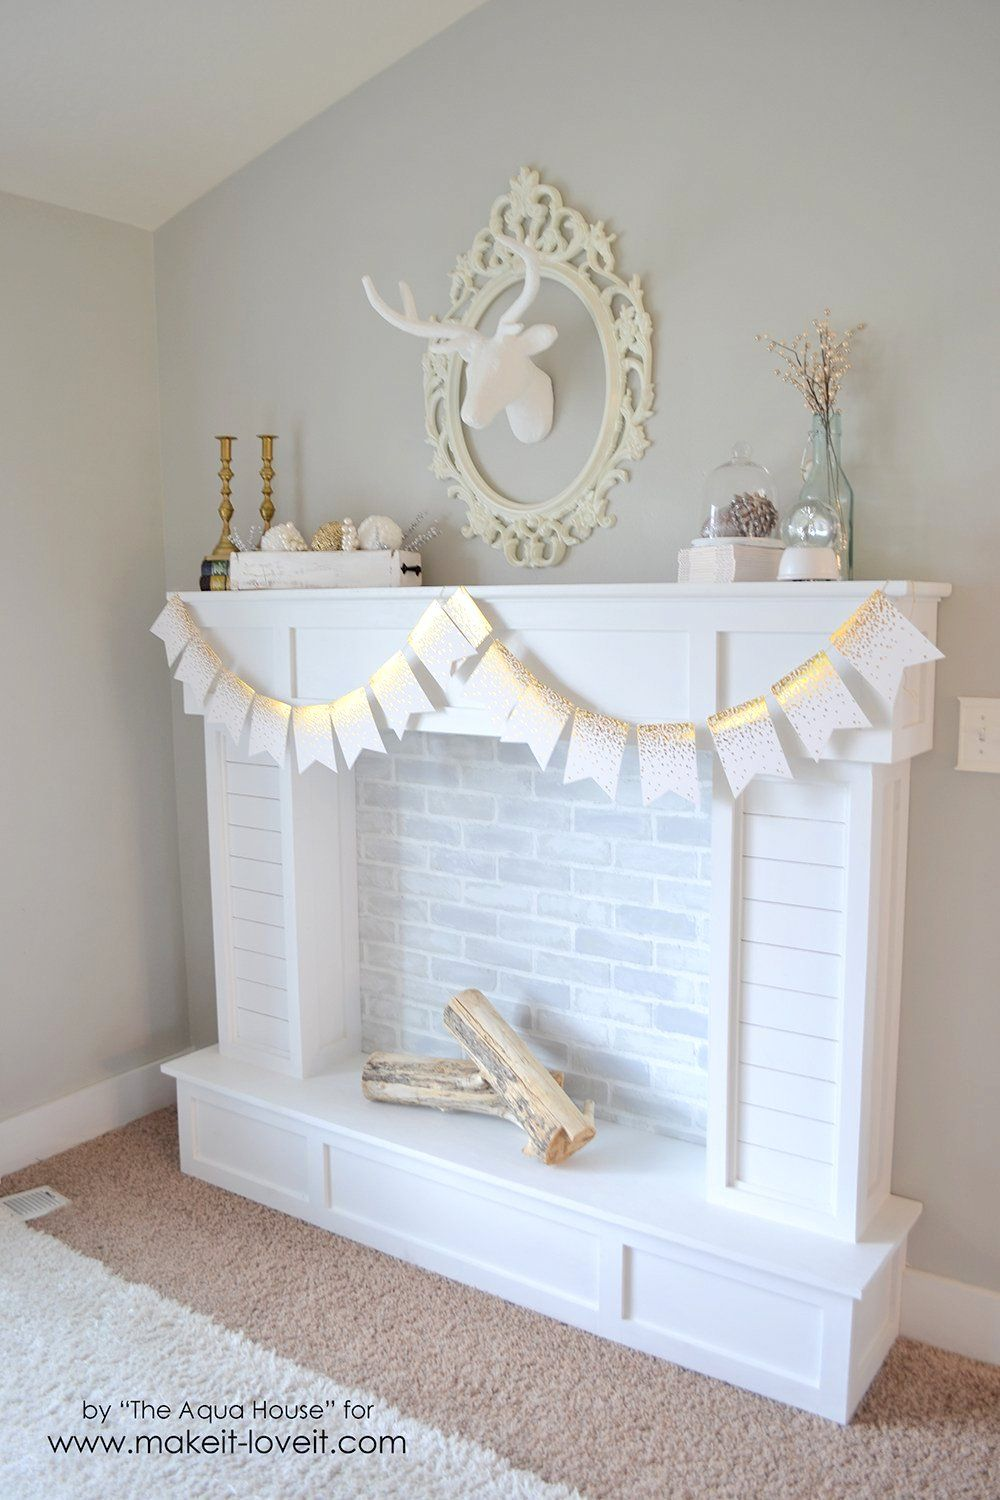 Make a FAUX FIREPLACE WITH HEARTH…that looks absolutely